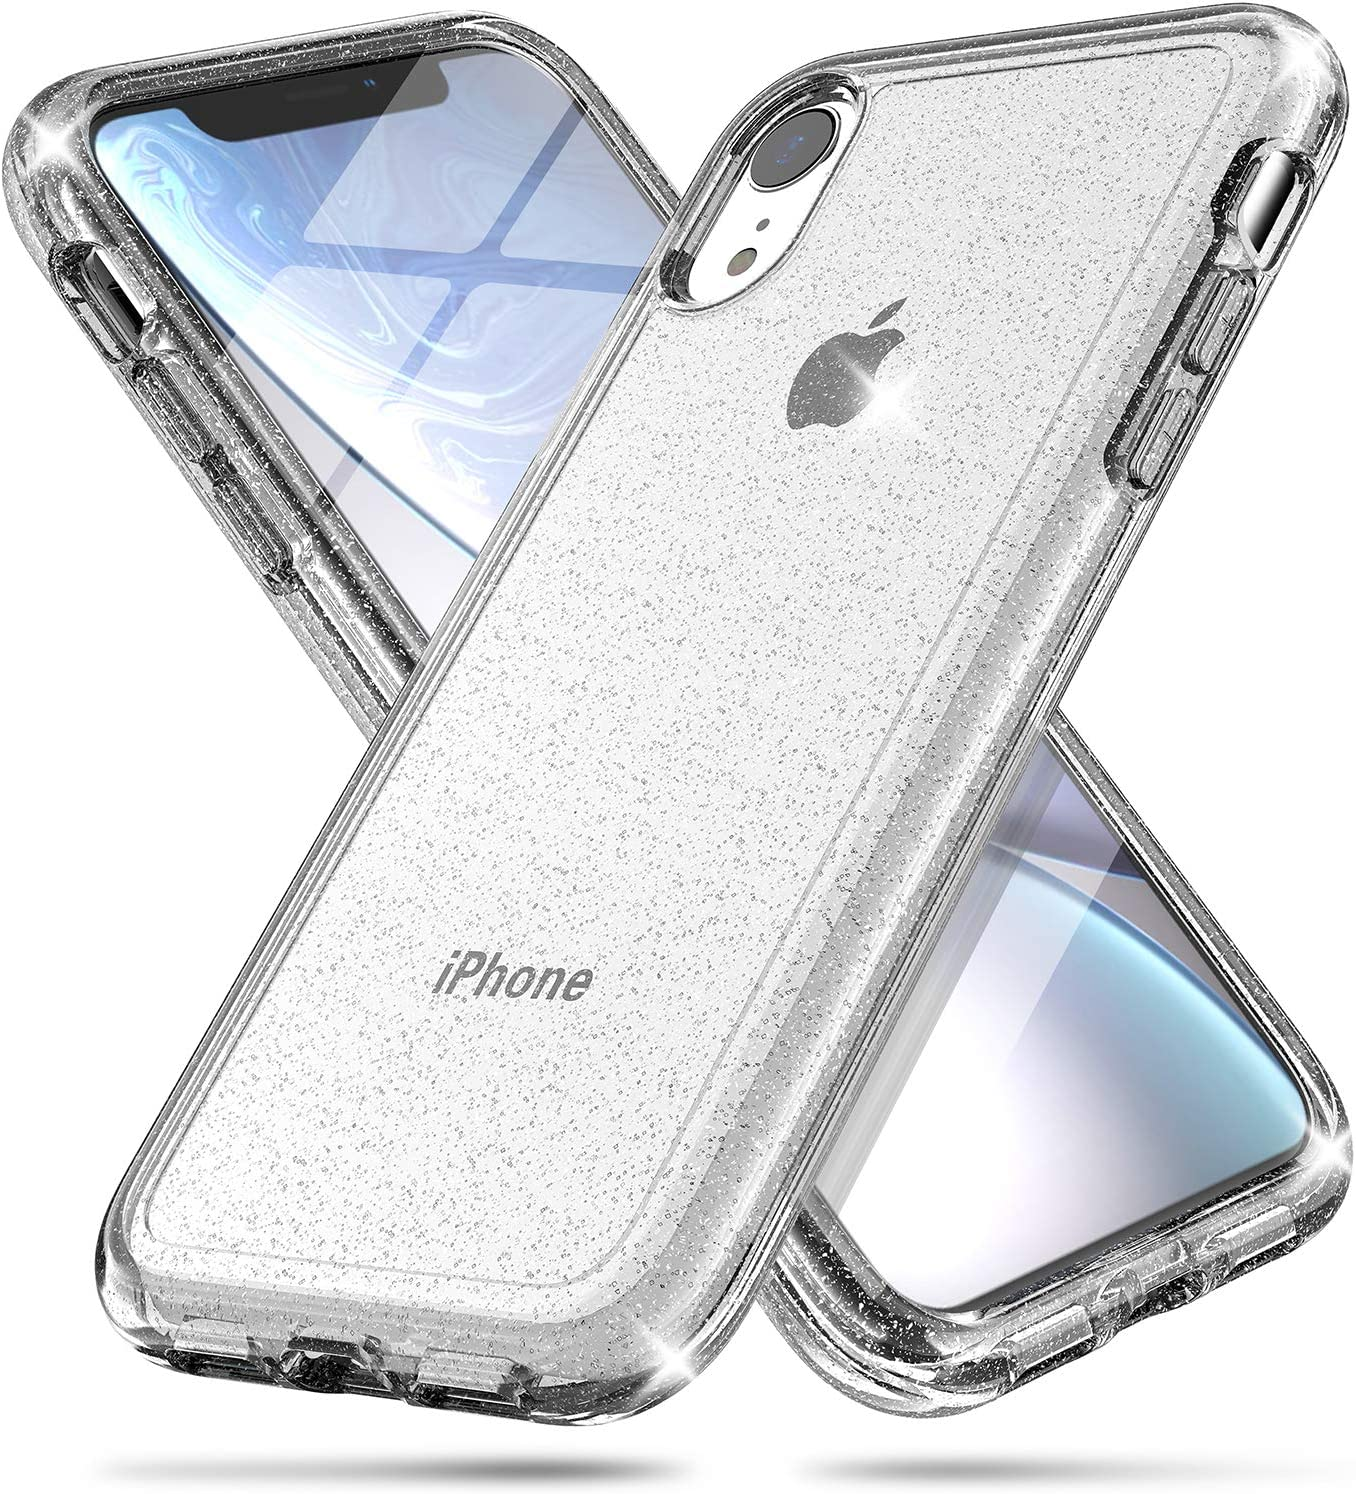 FanTEK Compatible for iPhone XR Case, Luxury Bling Glitter Protective Bumper Hard Shell Shockproof Crystal Cover for Women Girl iPhone XR, Glitter Clear